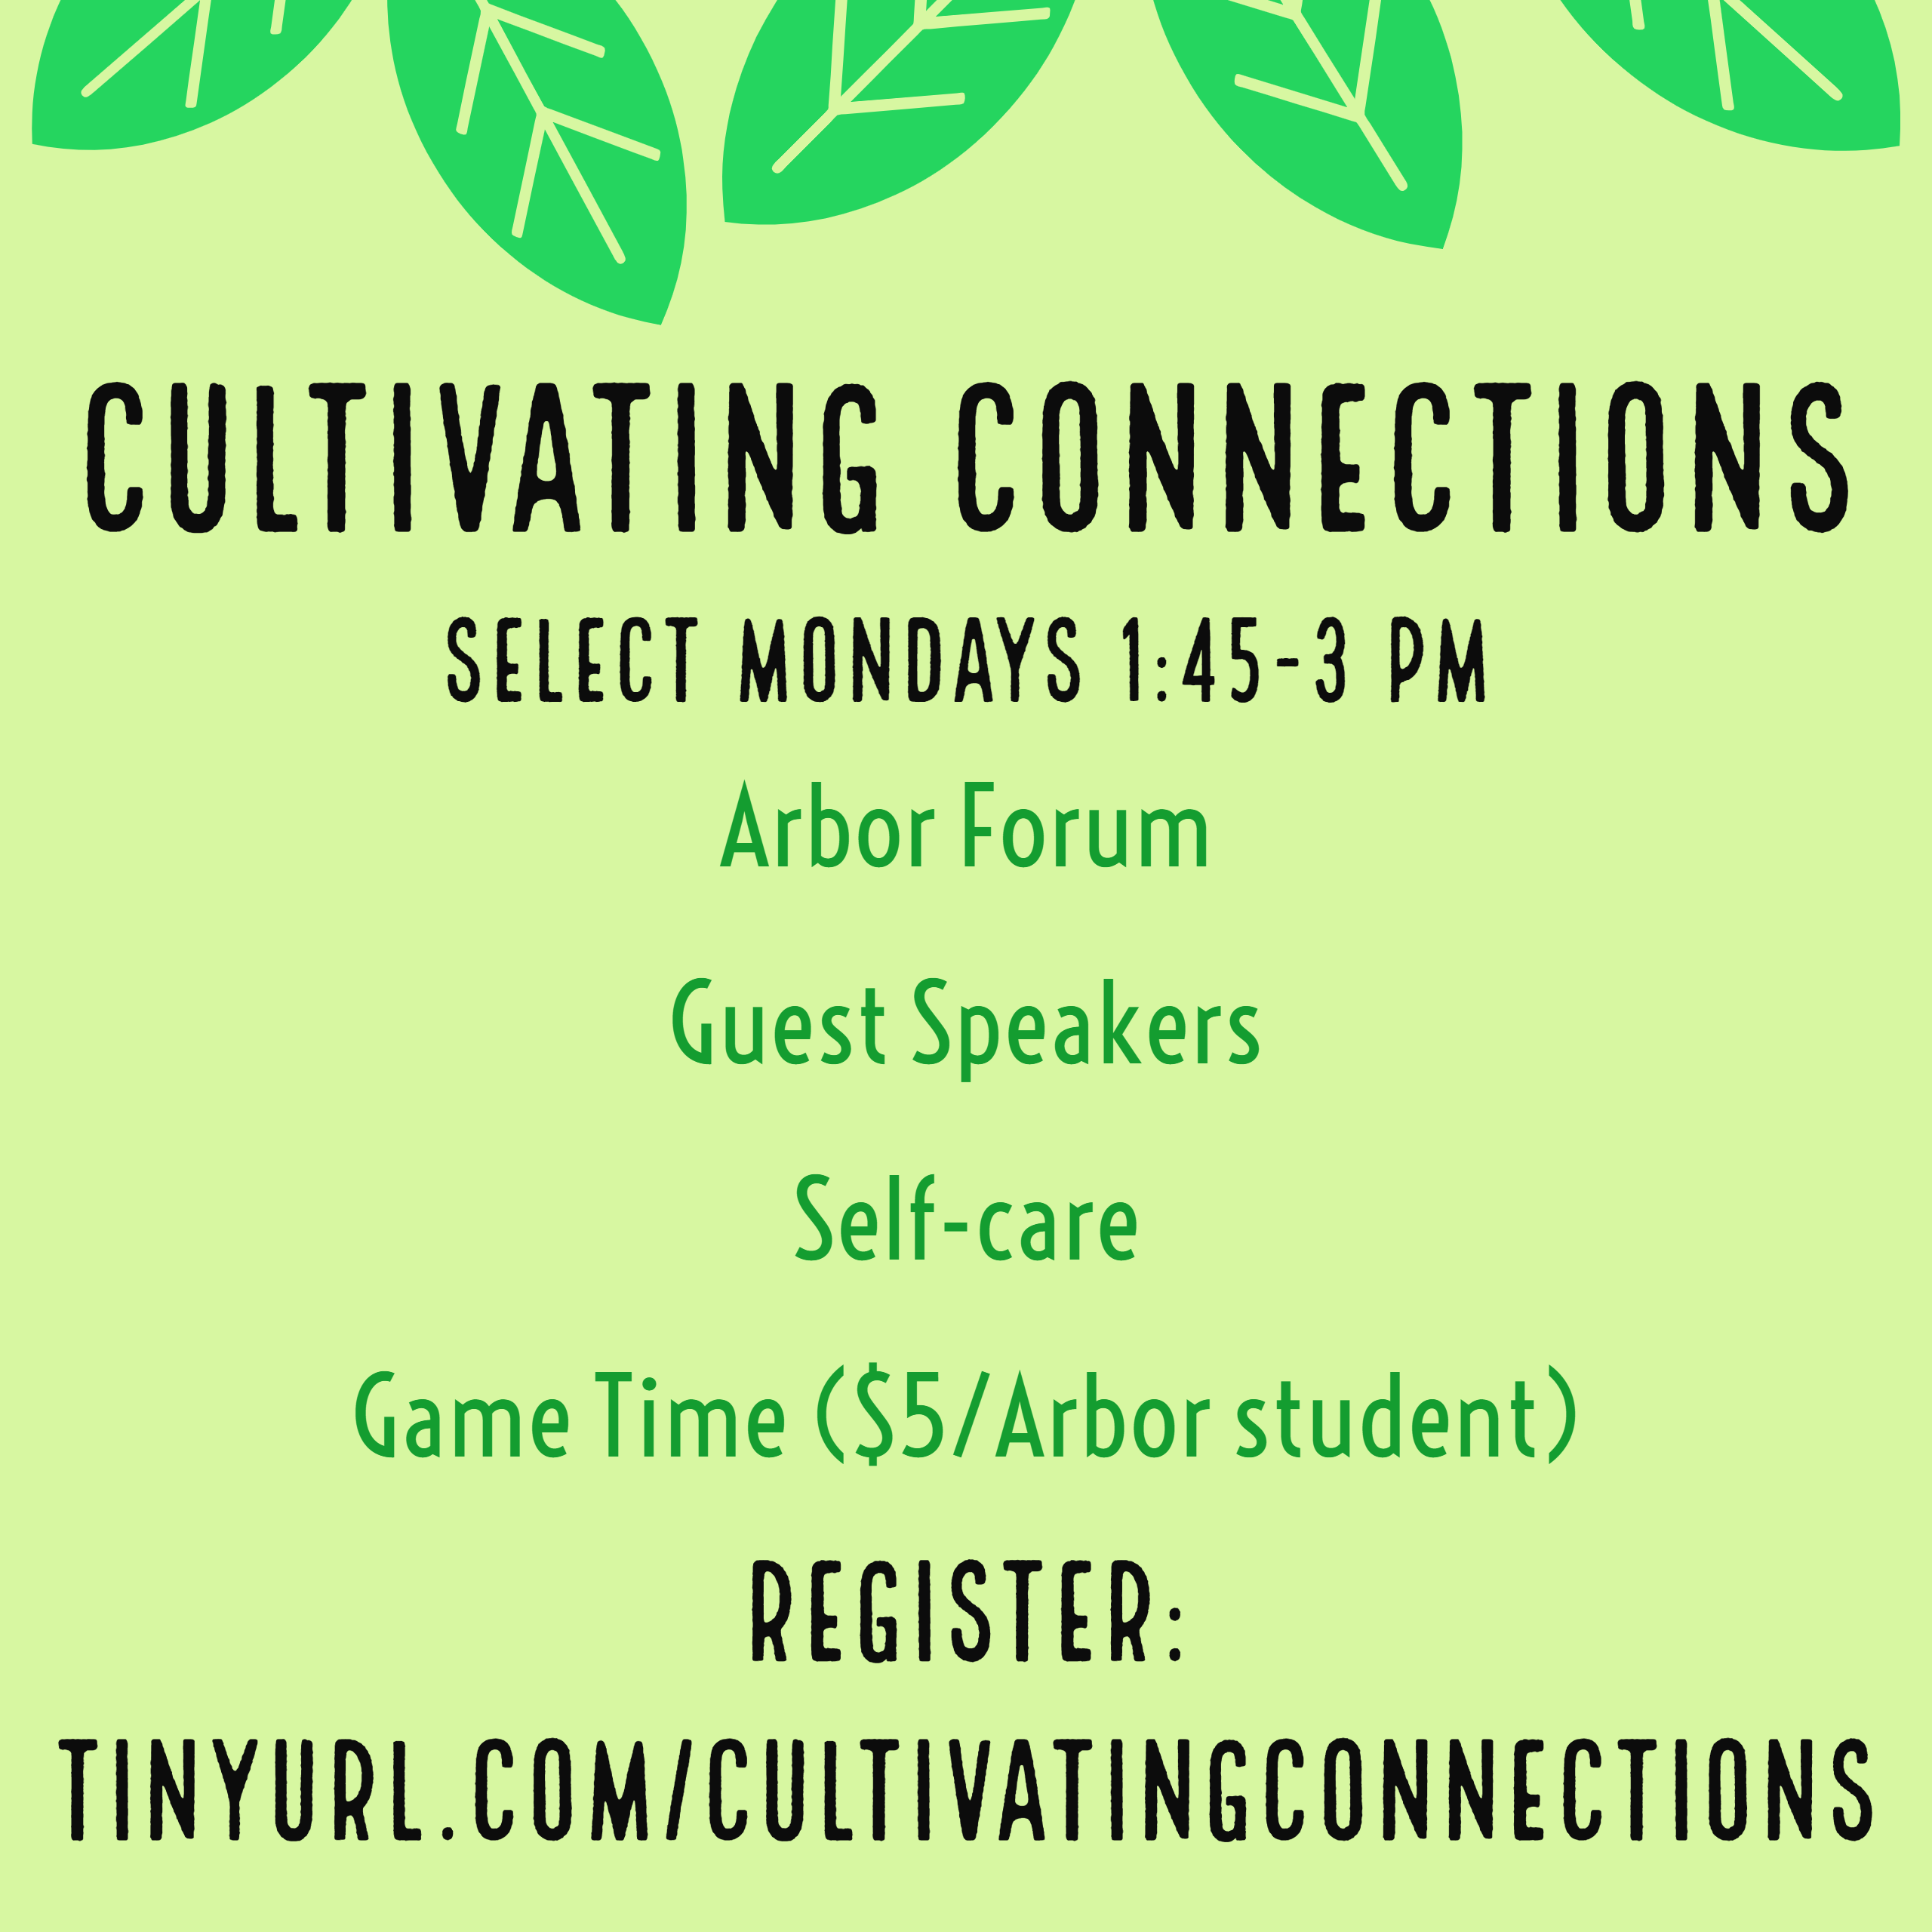 Cultivating connections select mondays from 1:45 to 3pm. register at tinyurl.com/cultivatingconnections